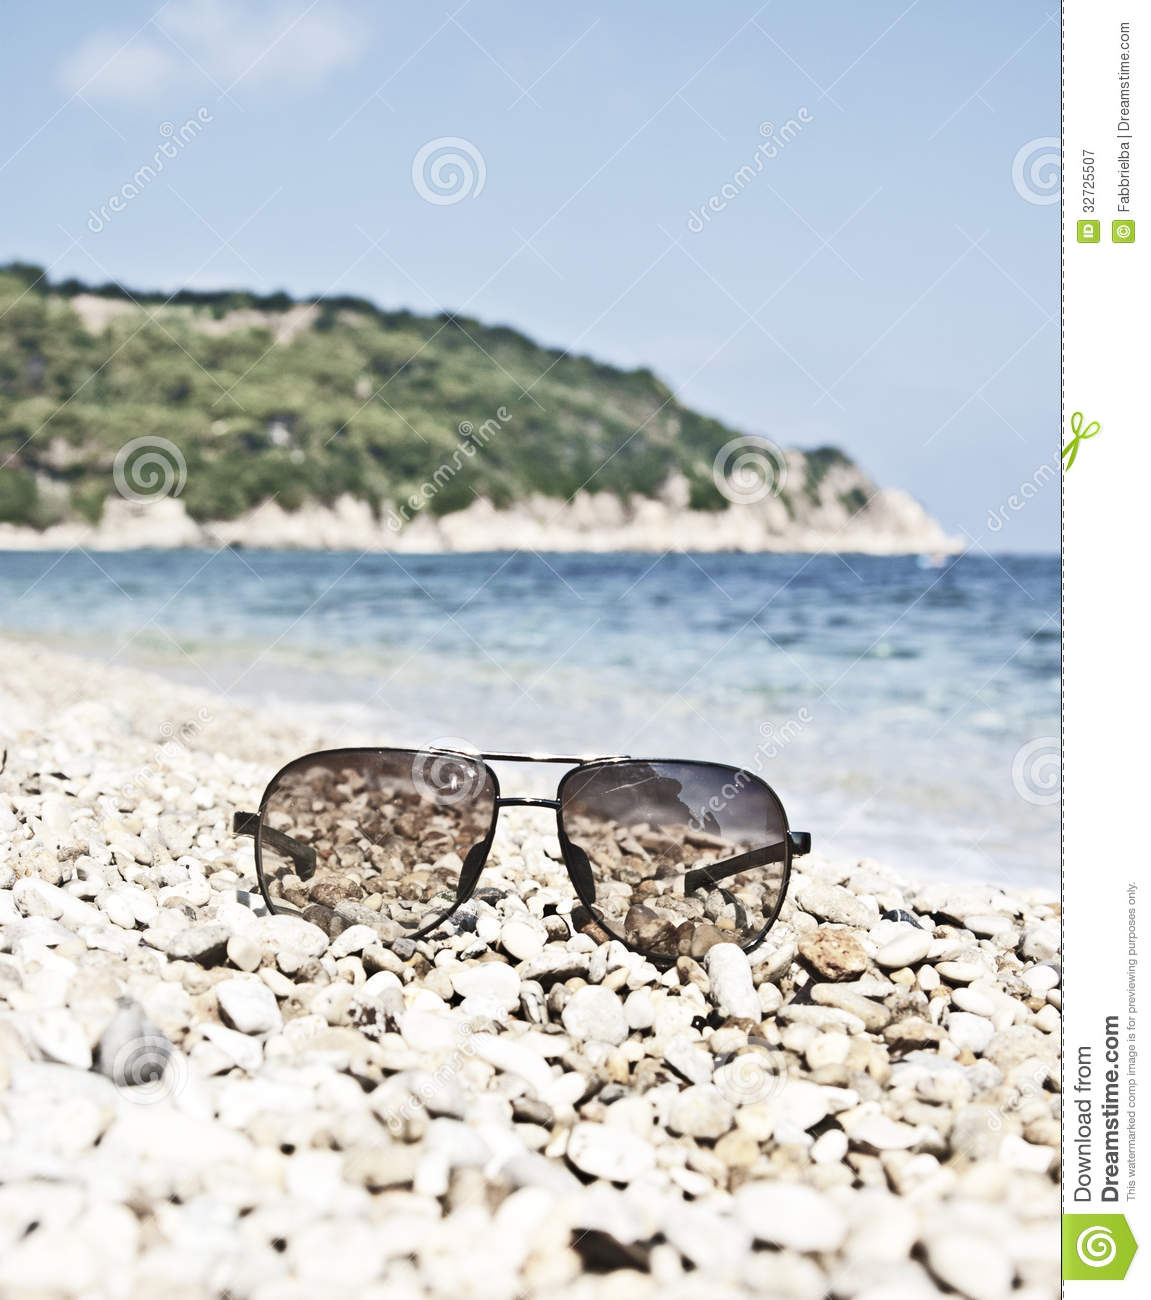 Sunglasses On The Beach Stock Image. Image Of Gadgets